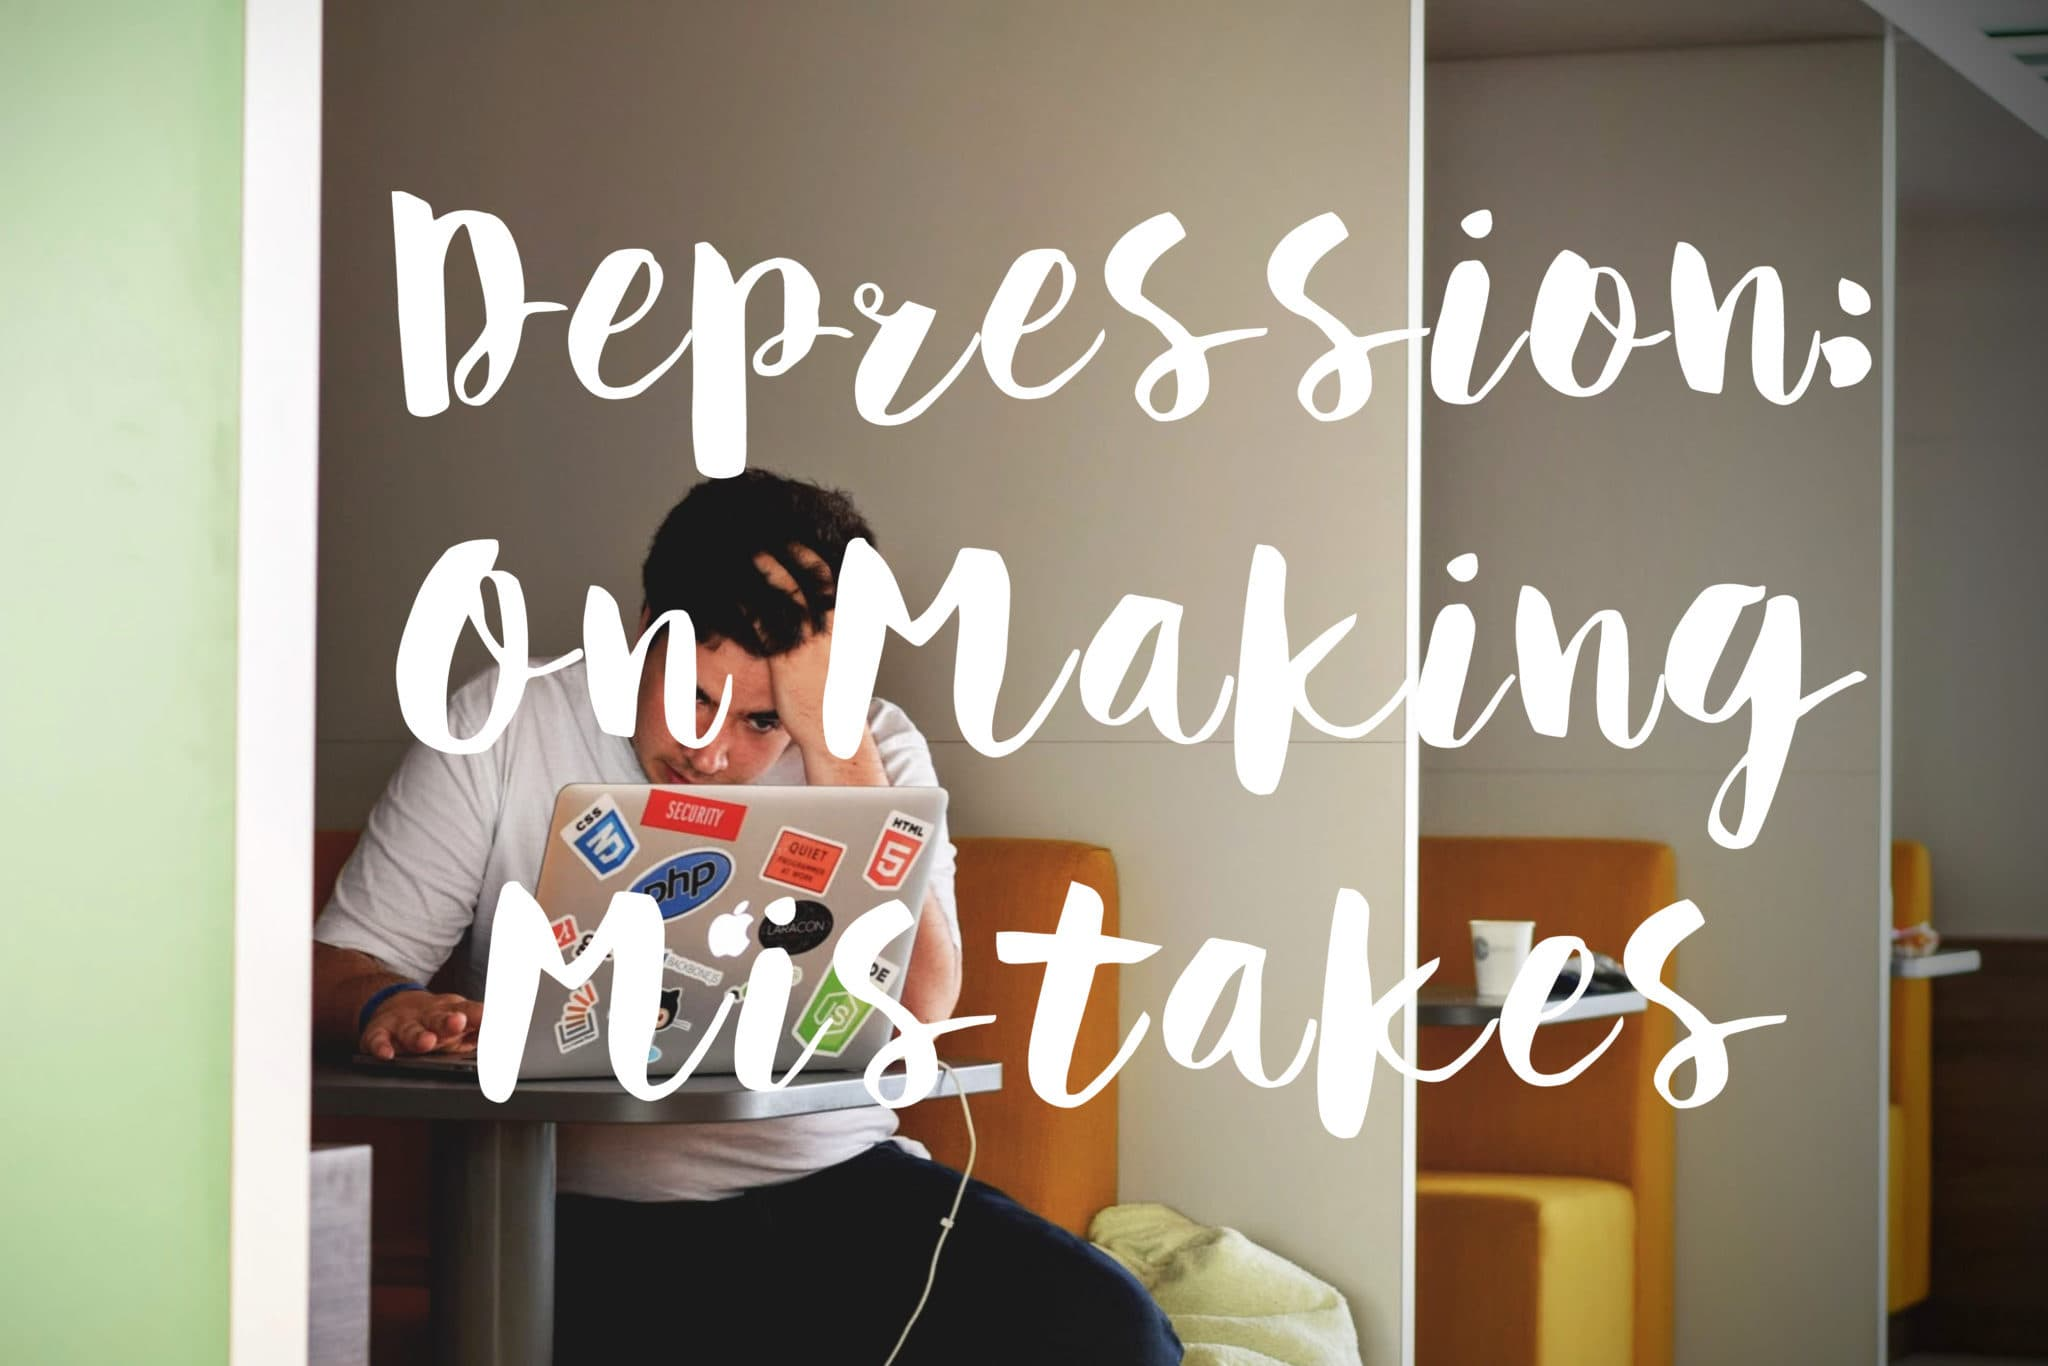 Depression making mistakes